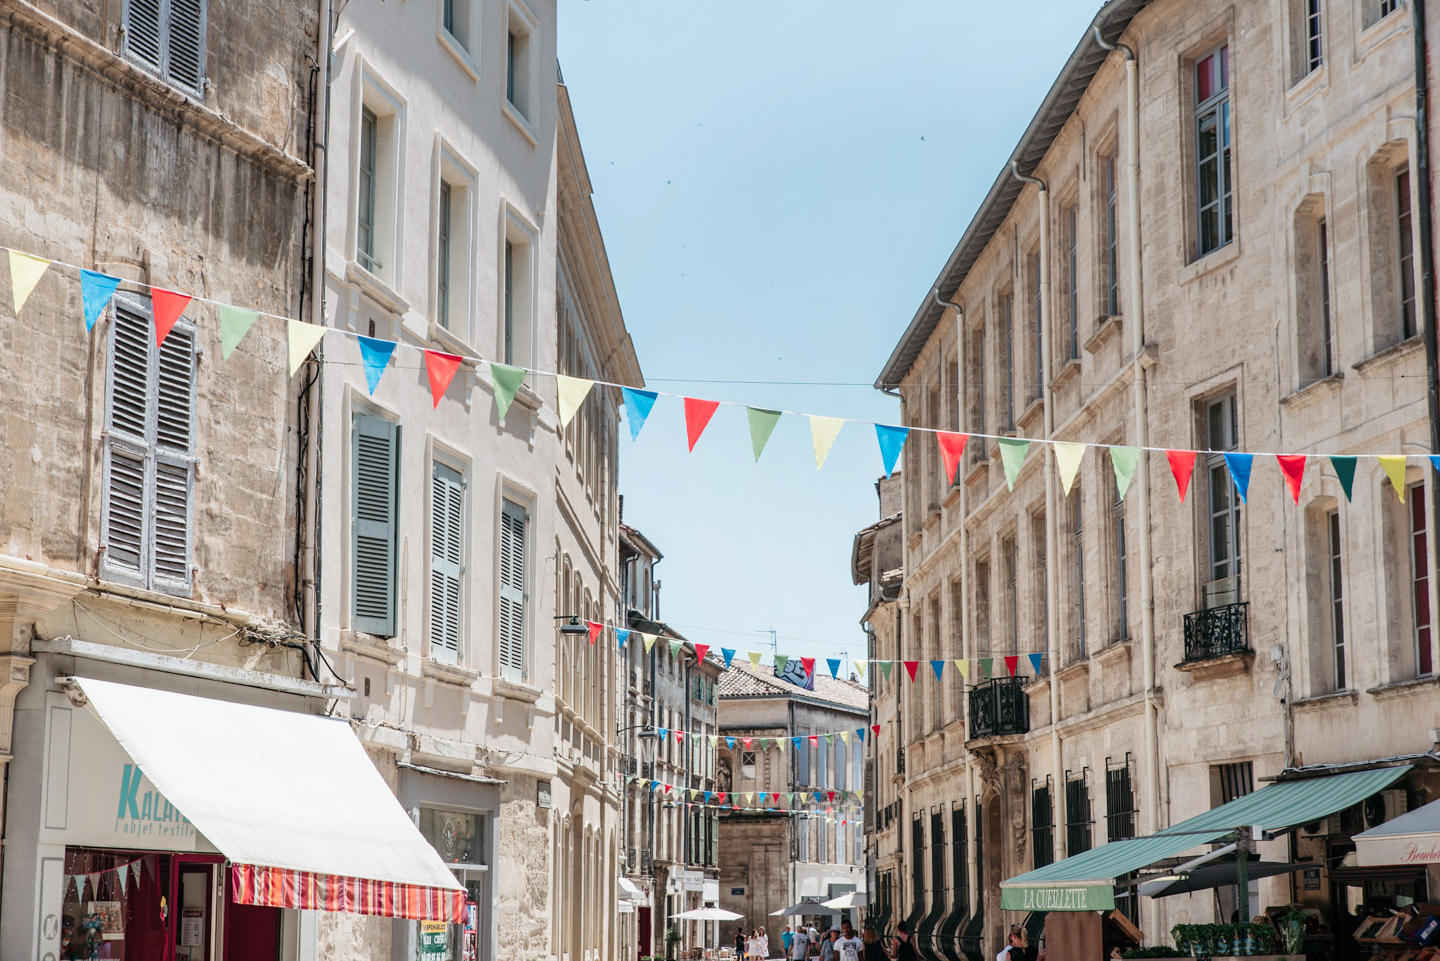 Blog-Mode-And-The-City-Lifestyle-Voyage-Avignon-Mas-Des-Herbes-Blanches-3